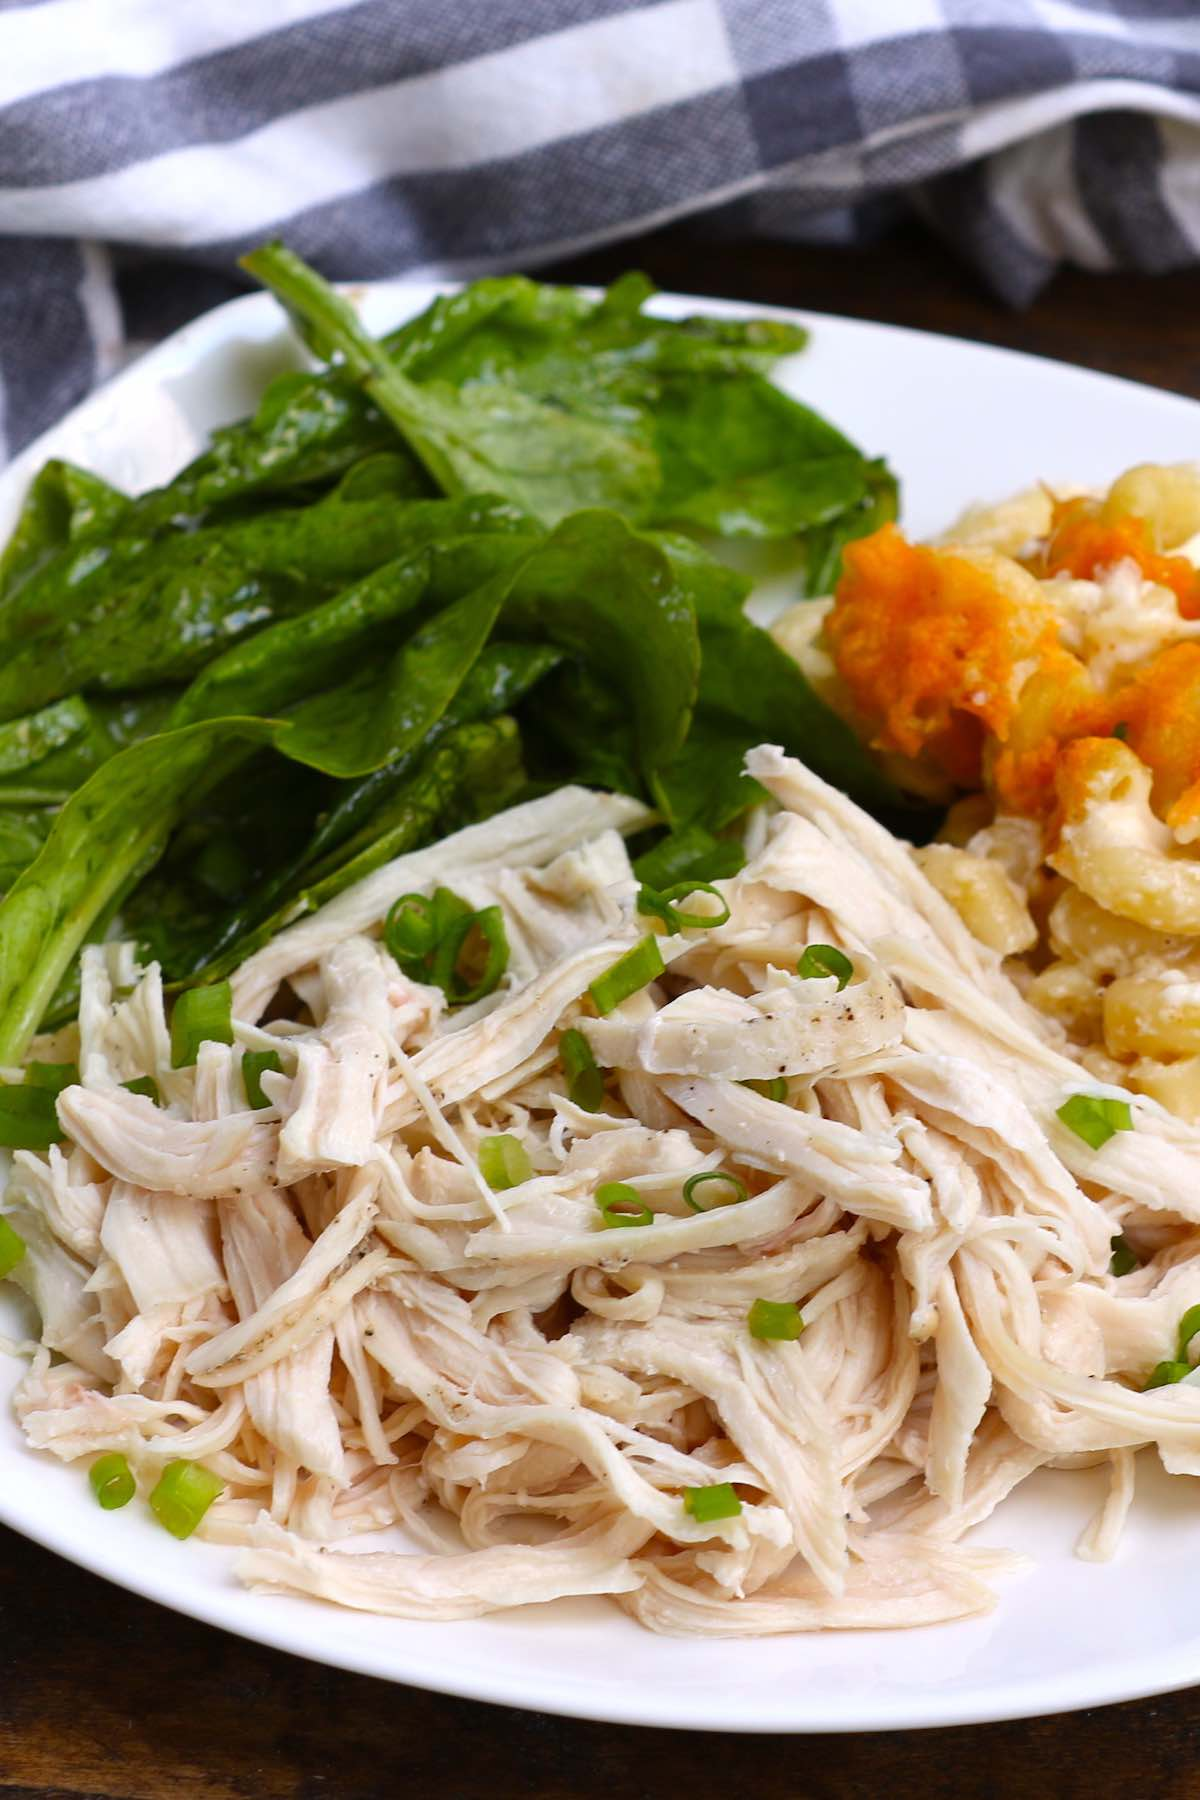 We've rounded up 18 Easy Shredded Chicken Recipes that are delicious and versatile. Shredded chicken makes a great addition to everything from spicy quesadillas to a creamy pasta bake.